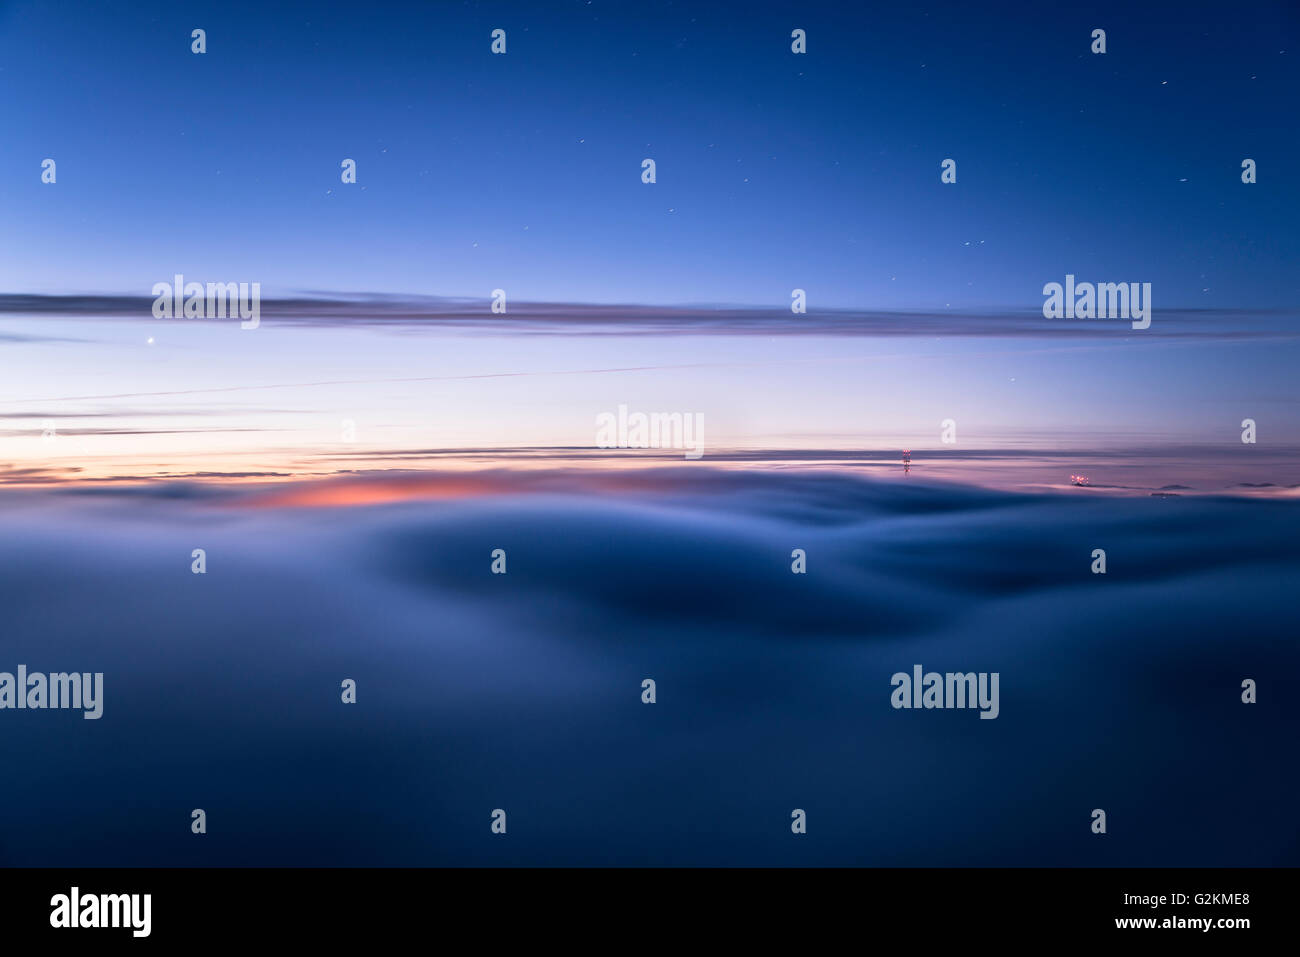 USA, San Francisco, waft of mist in the morning - Stock Image